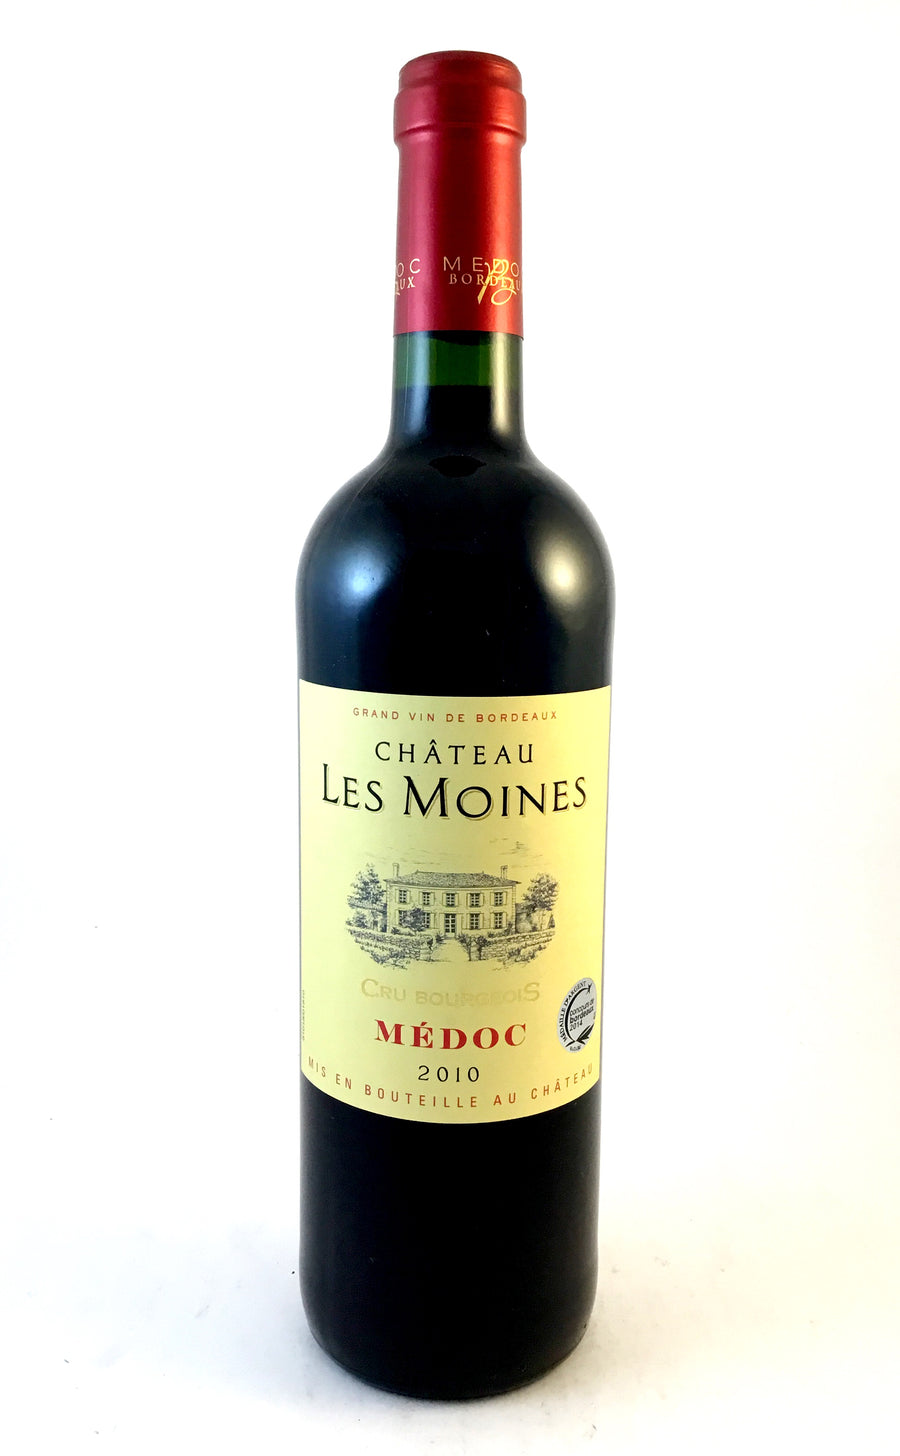 Chateau Les Moines Medoc Cru Bourgeois - Wineseeker